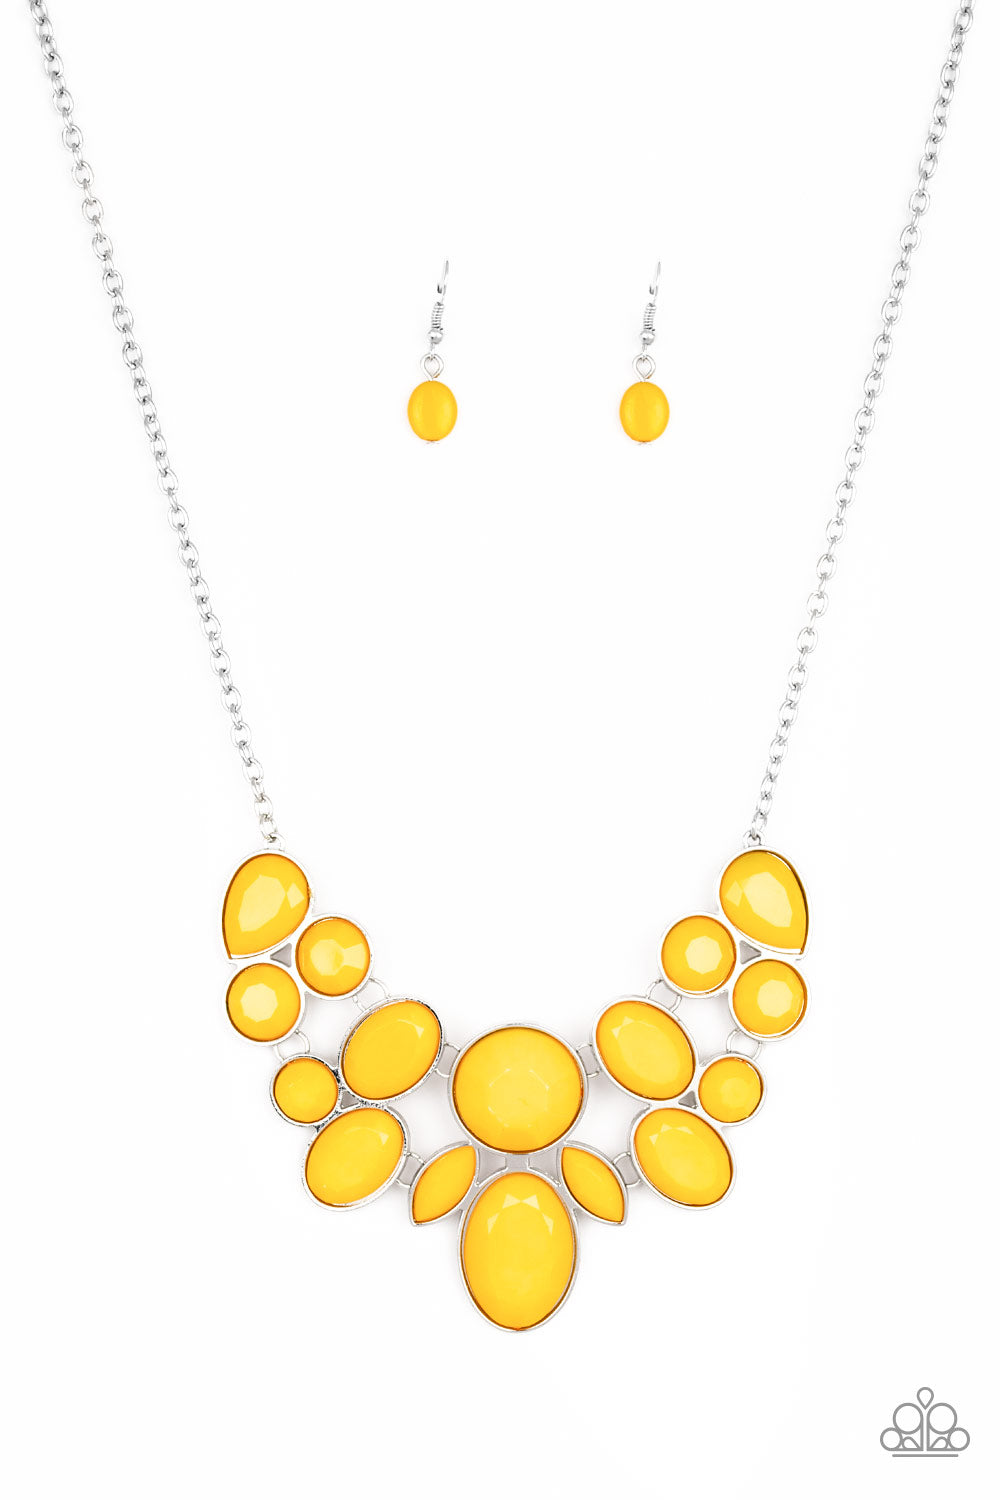 Demi-Diva - Yellow Necklace - SavvyChicksJewelry